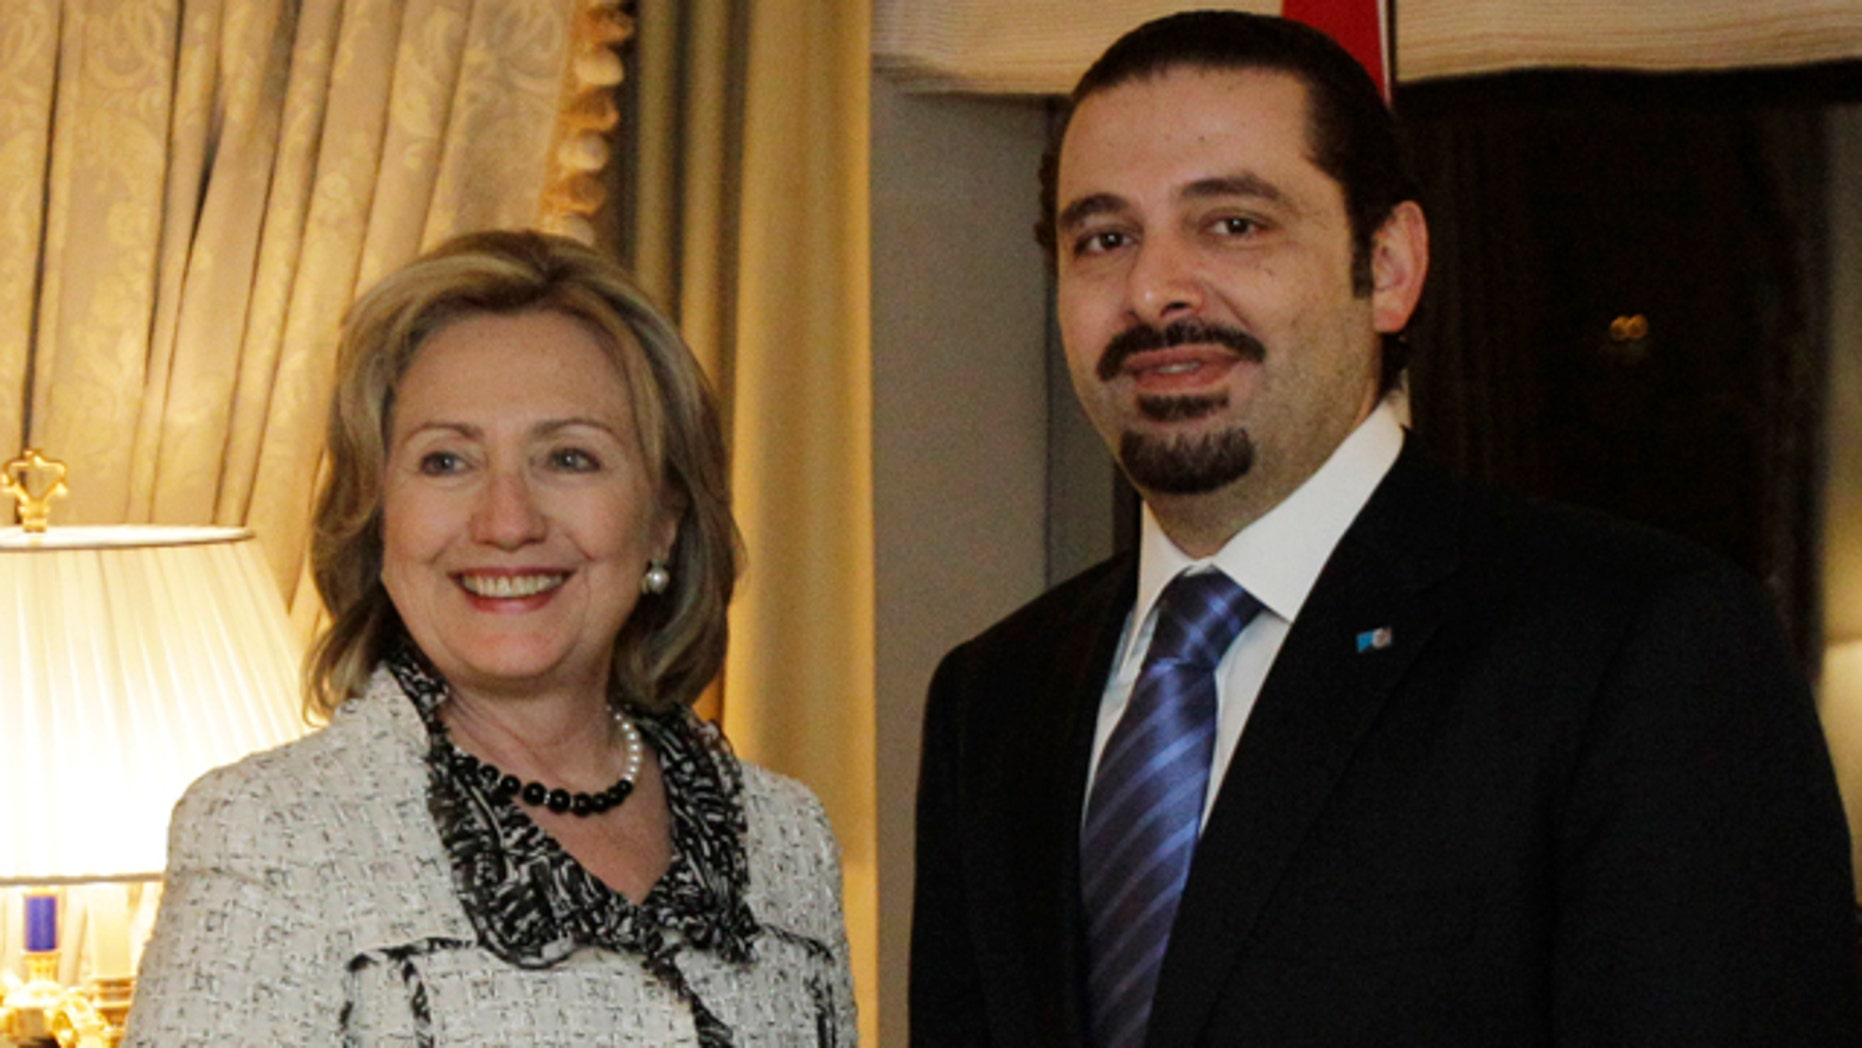 Jan. 7: Lebanese Prime Minister Saad Hariri, right, shakes hands with Secretary of State Hillary Rodham Clinton in New York.